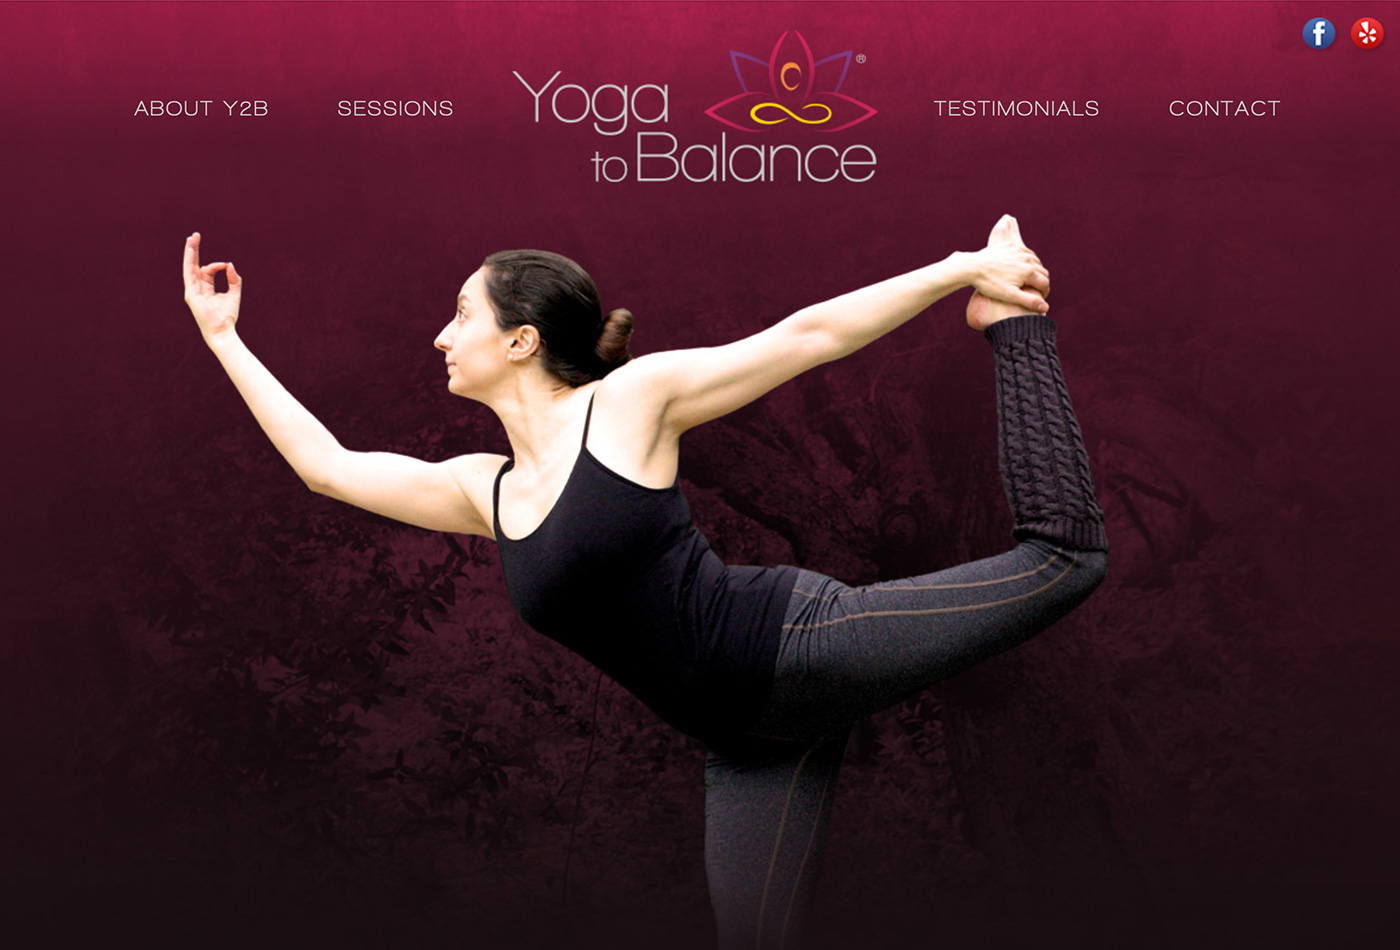 Screenshot of the Yoga To Balance website.